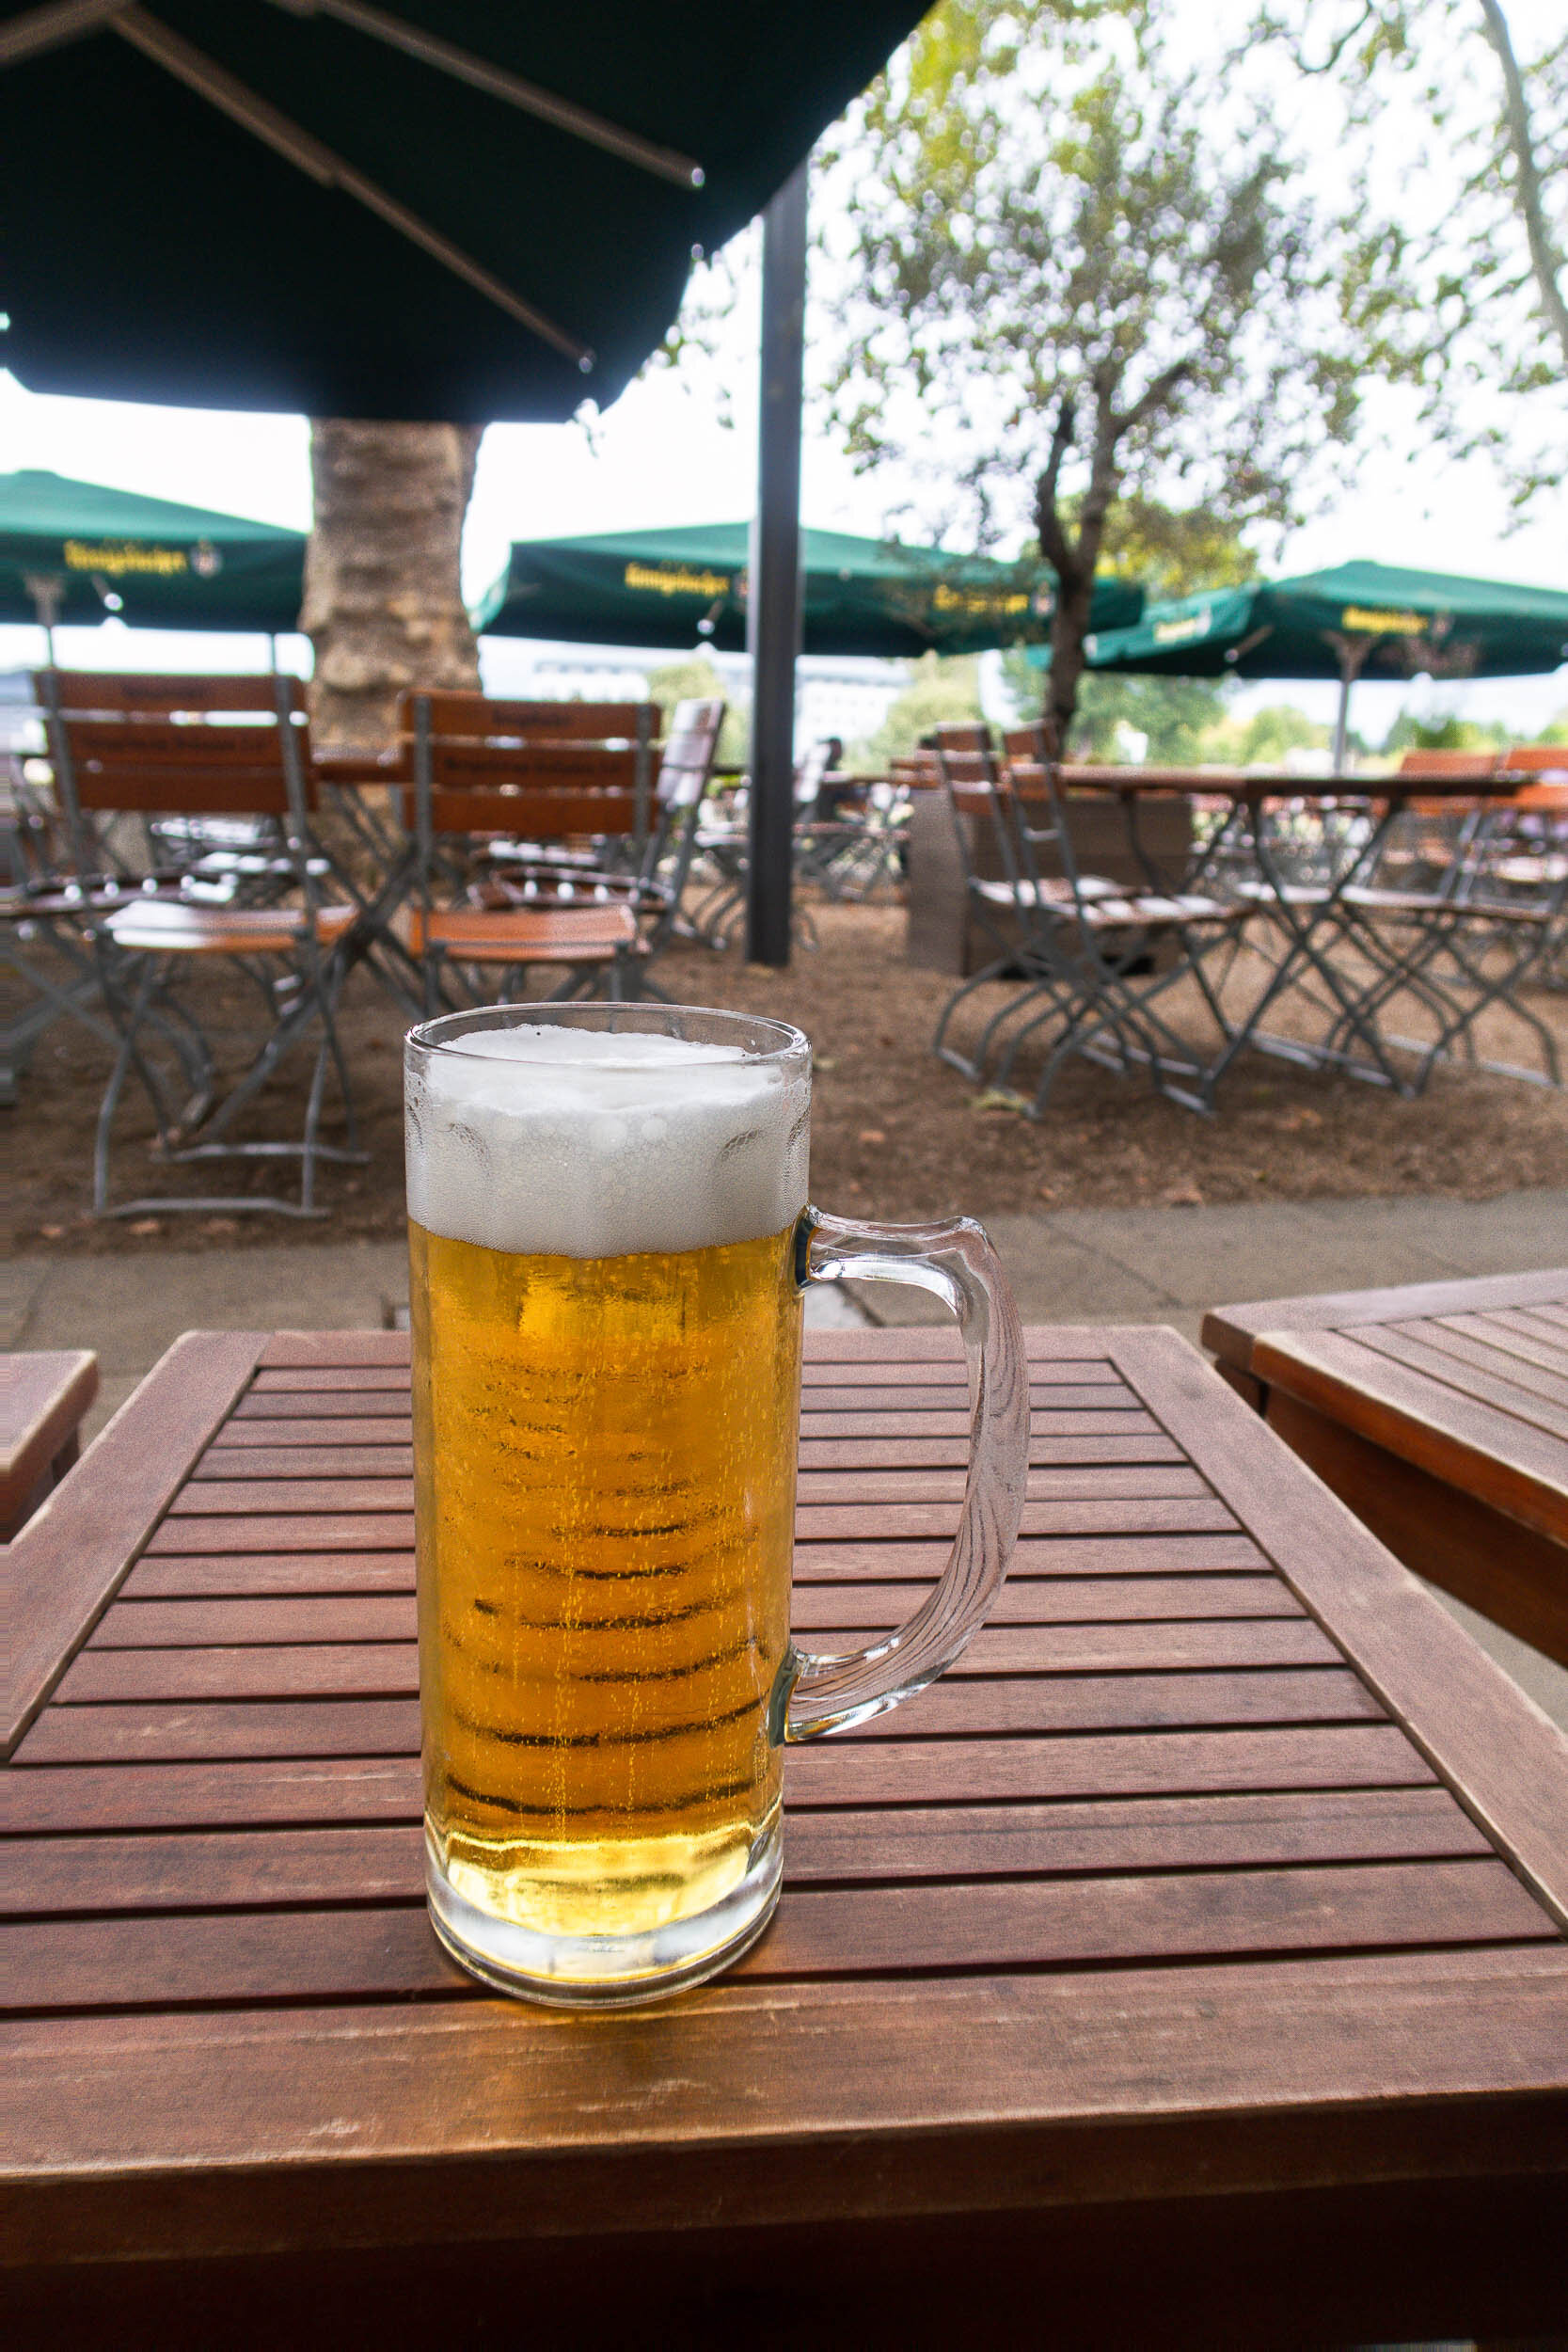 The ULTIMATE guide to German Beer gardens! Where to go and what to order.